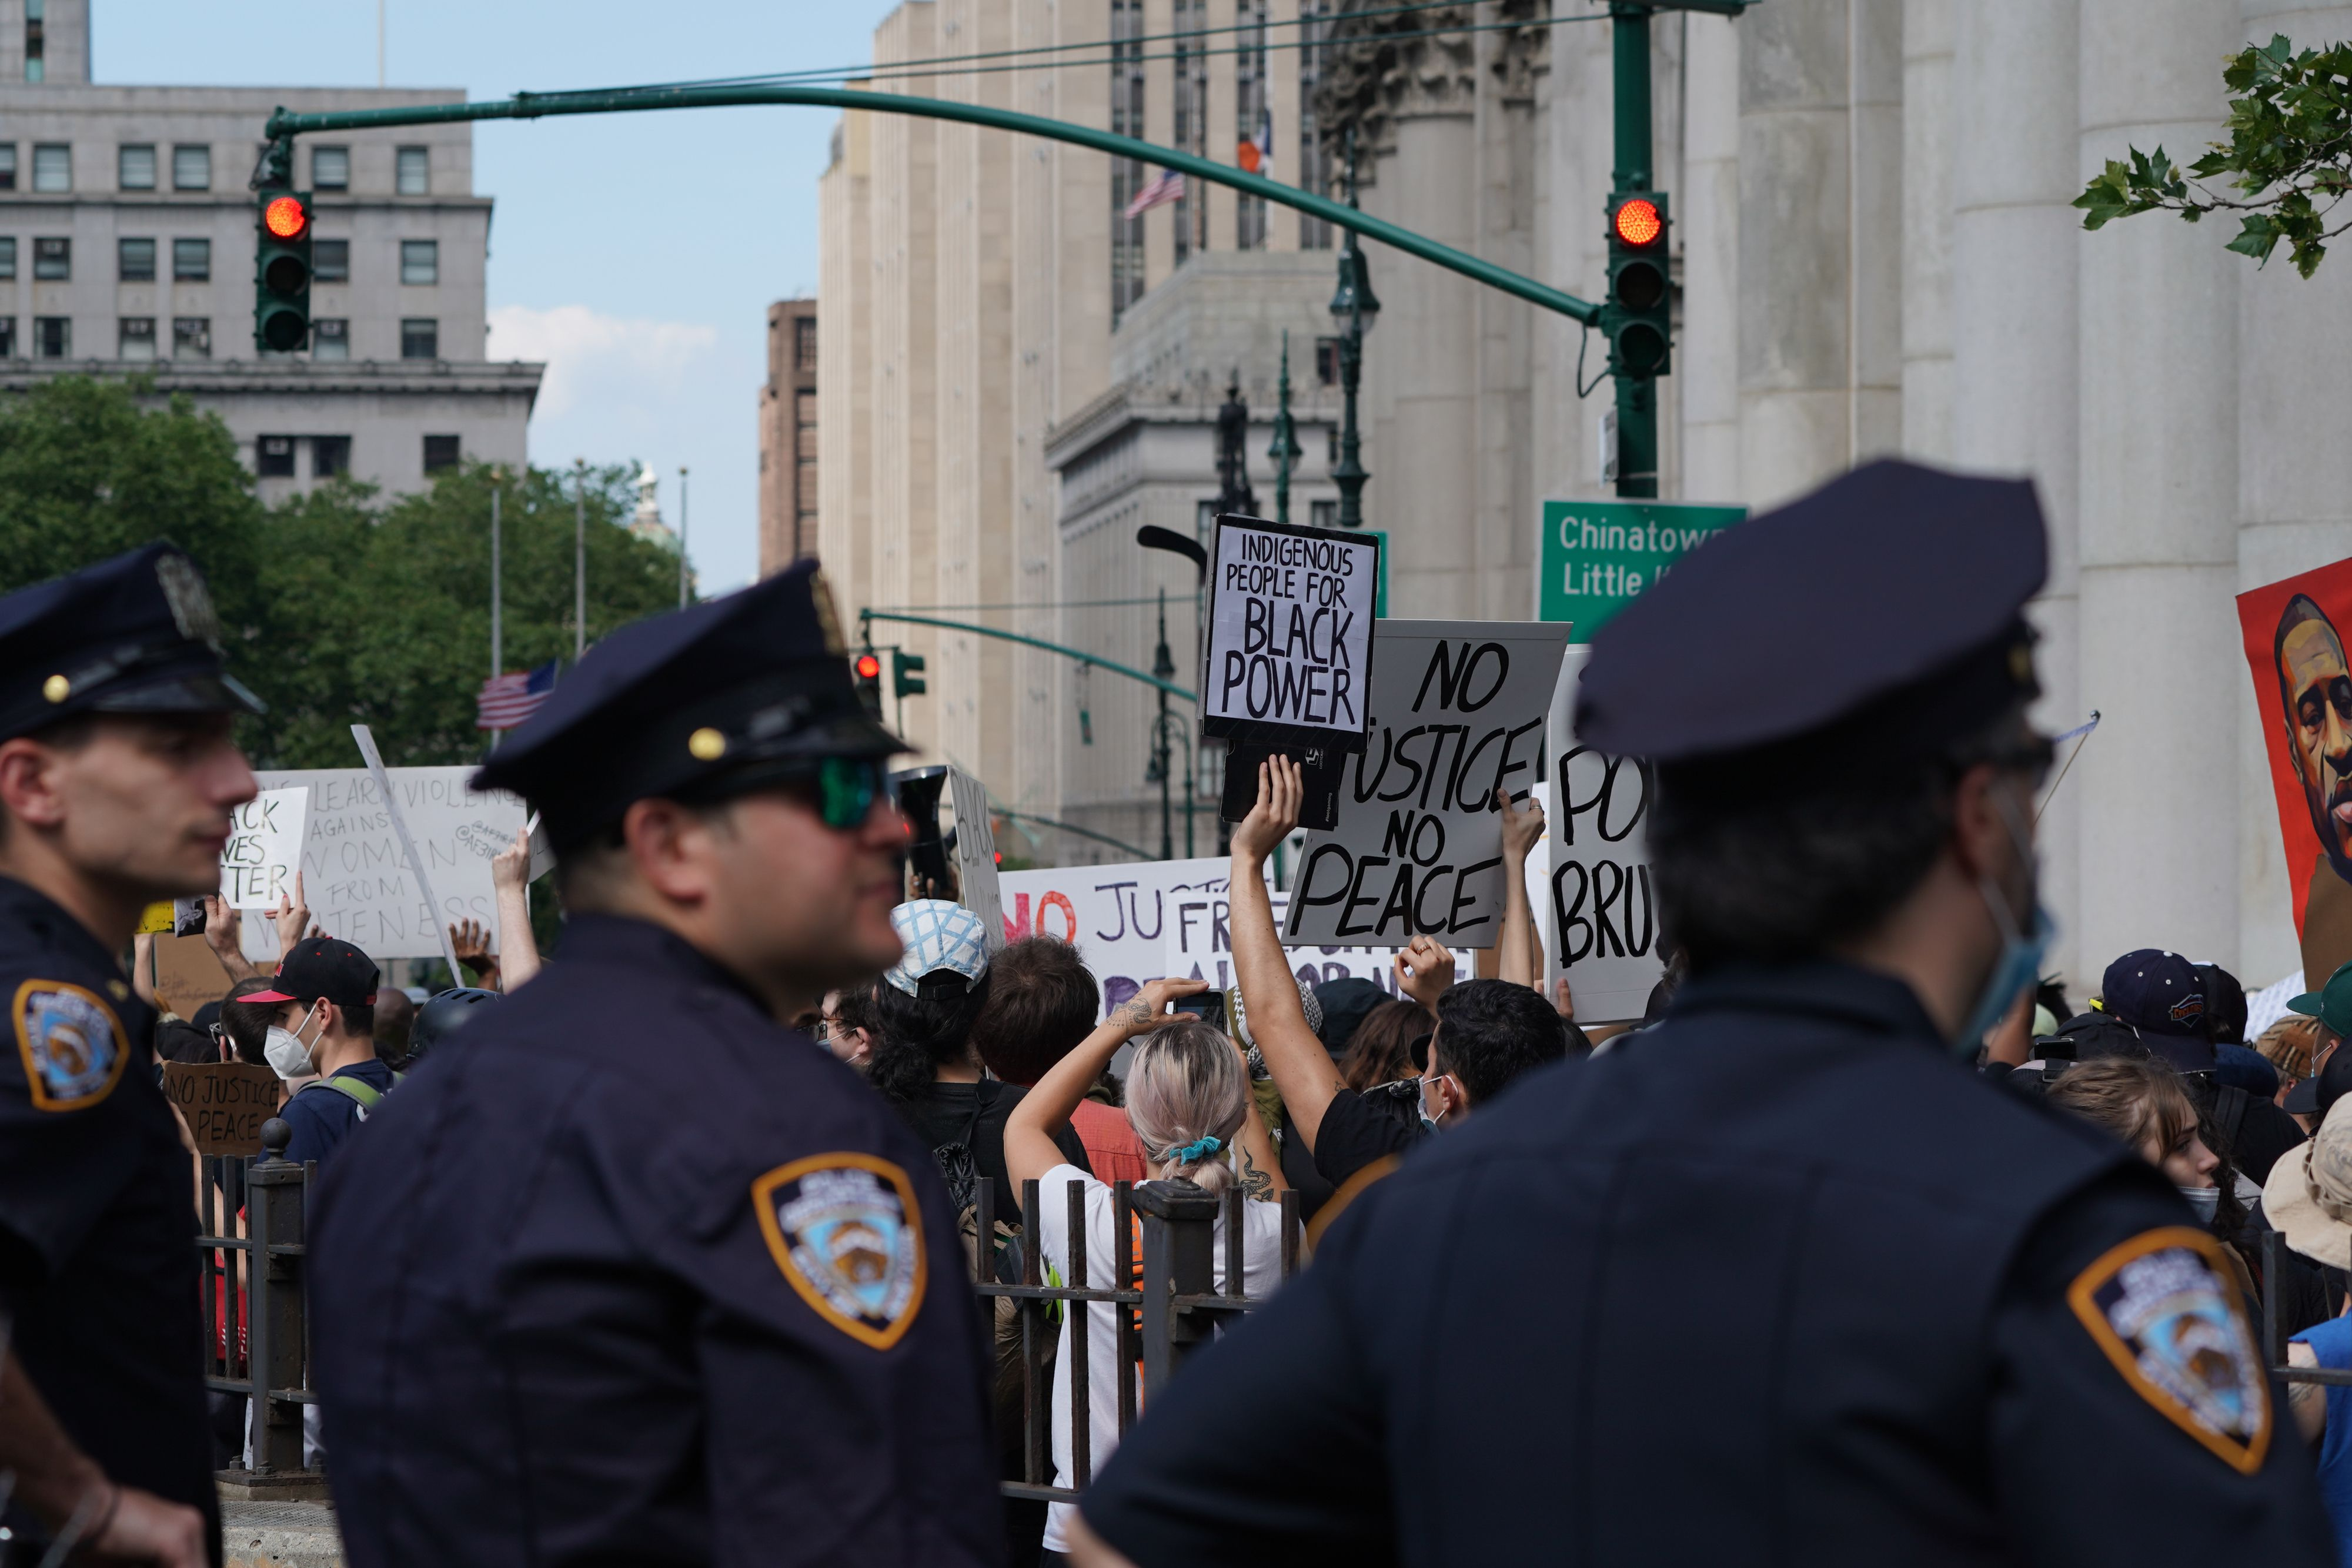 New York City Police look on as protesters march into Manhattan from the Brooklyn Bridge over the death of George Floyd by Minneapolis Police on June 19, 2020 in New York. - The US marks the end of slavery by celebrating Juneteenth, with the annual unofficial holiday taking on renewed significance as millions of Americans confront the nation's living legacy of racial injustice. (Photo by Bryan R. Smith / AFP)